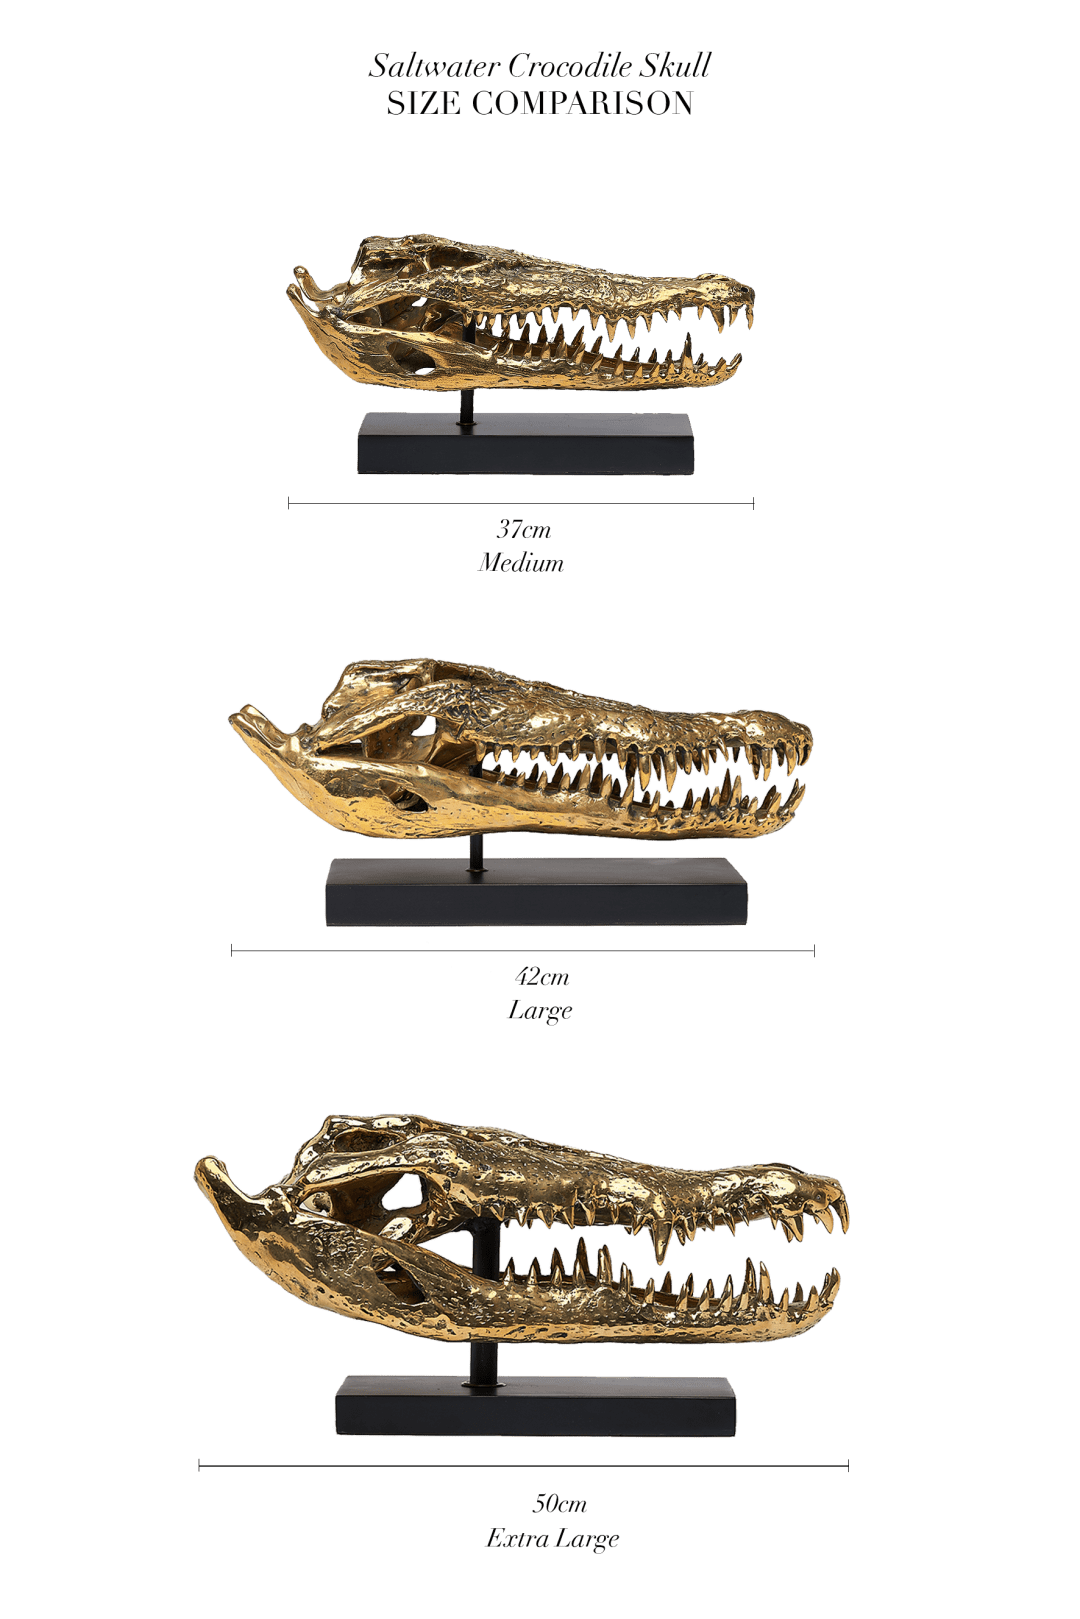 saltwater crocodile skull comparison